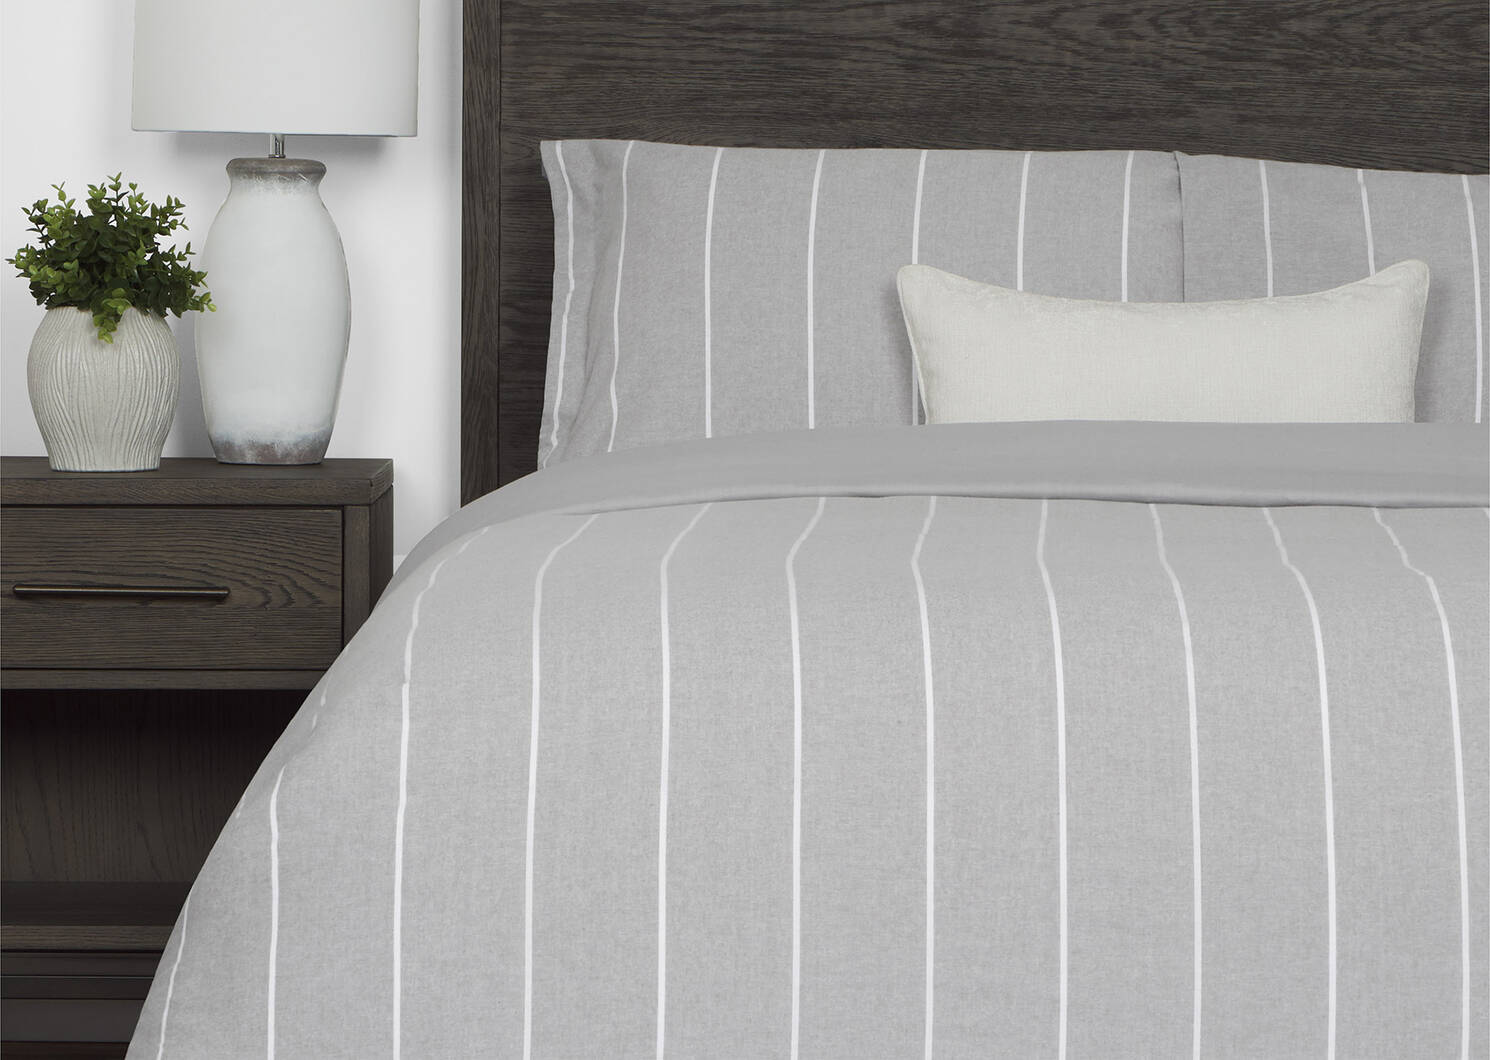 Palmas Striped Duvet Set Grey/White